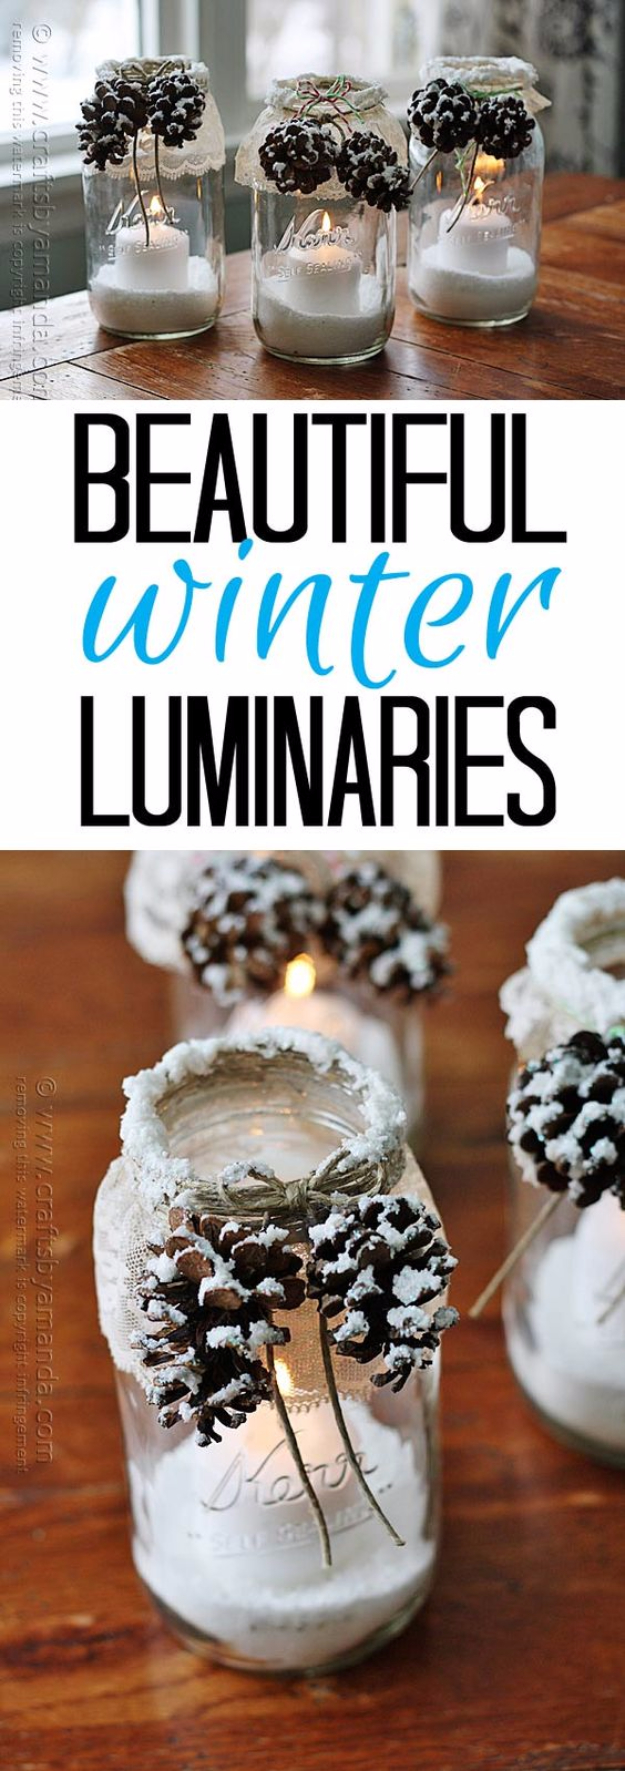 DIY Christmas Luminaries and Home Decor for The Holidays - Snowy Pinecone Candle Jars - Cool Candle Holders, Tea Lights, Holiday Gift Ideas, Christmas Crafts for Kids #diy #luminaries #christmas